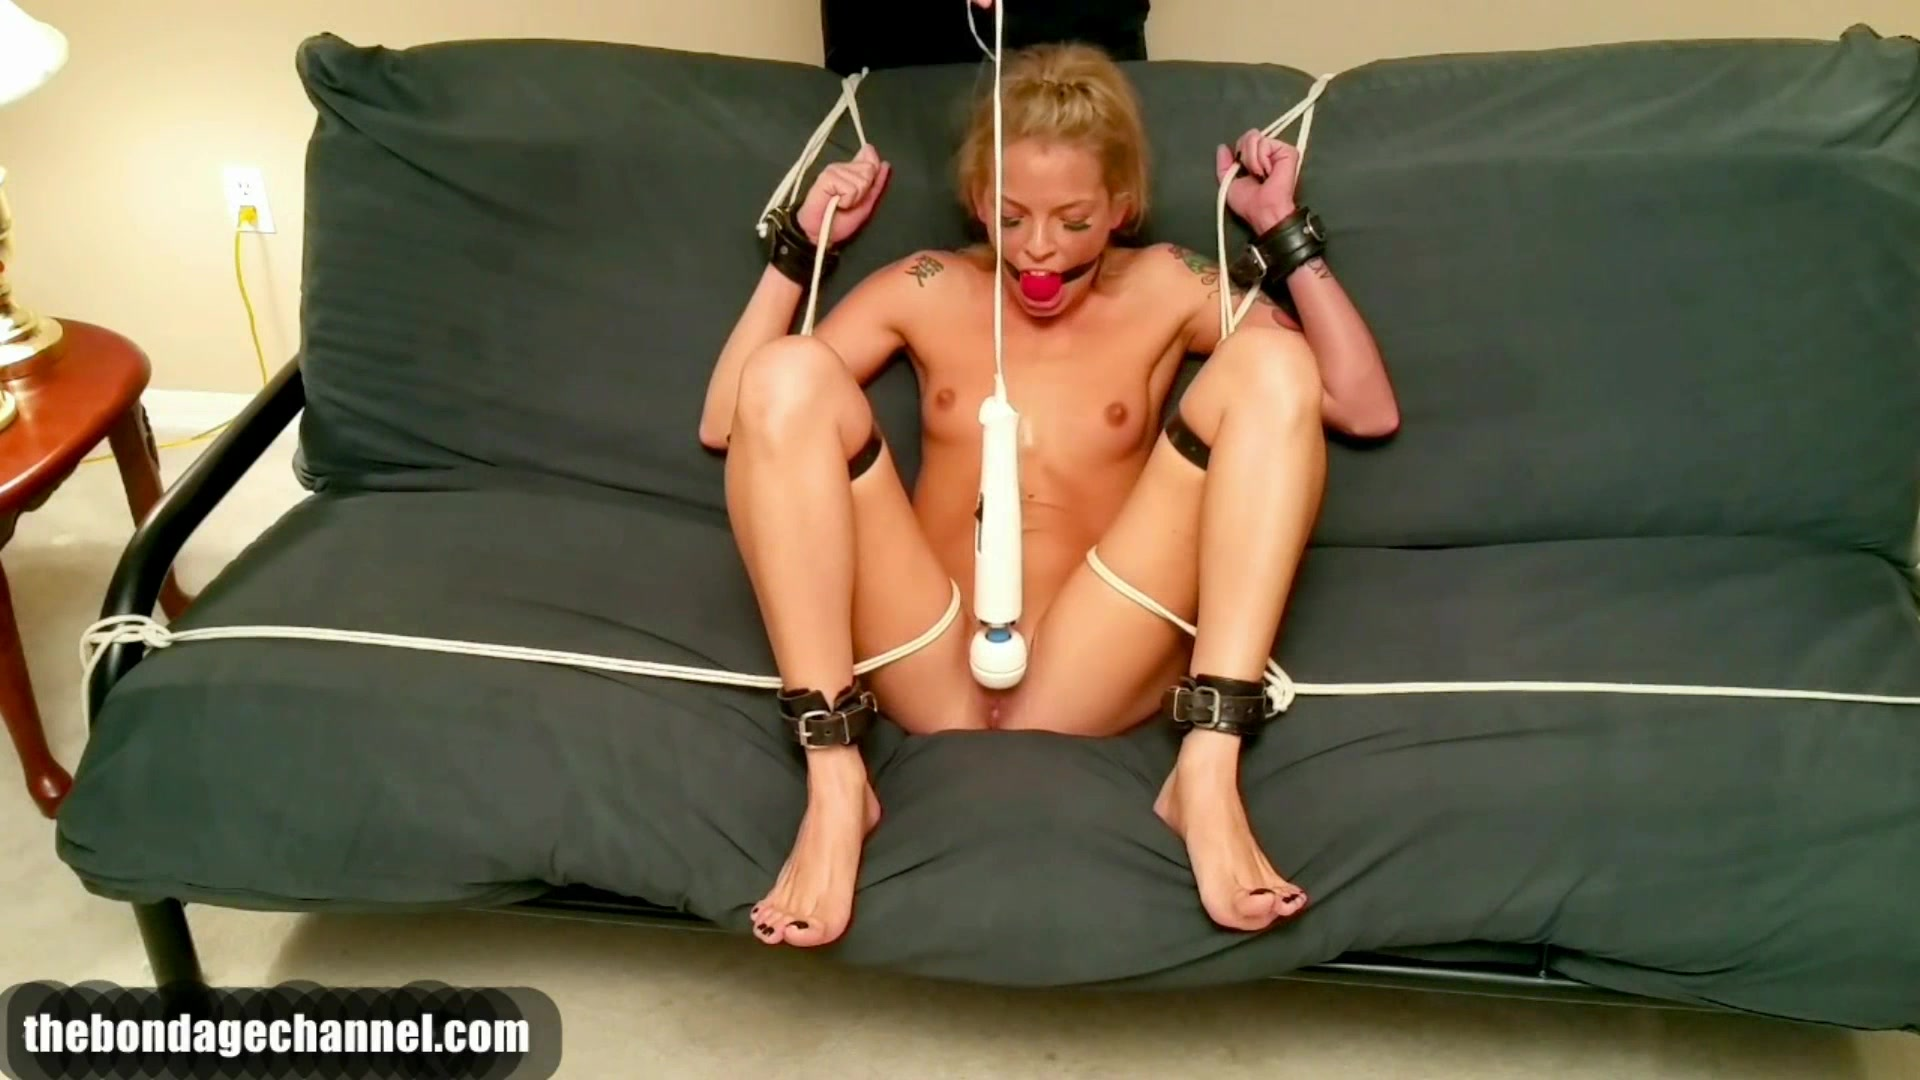 Bondage adult empire